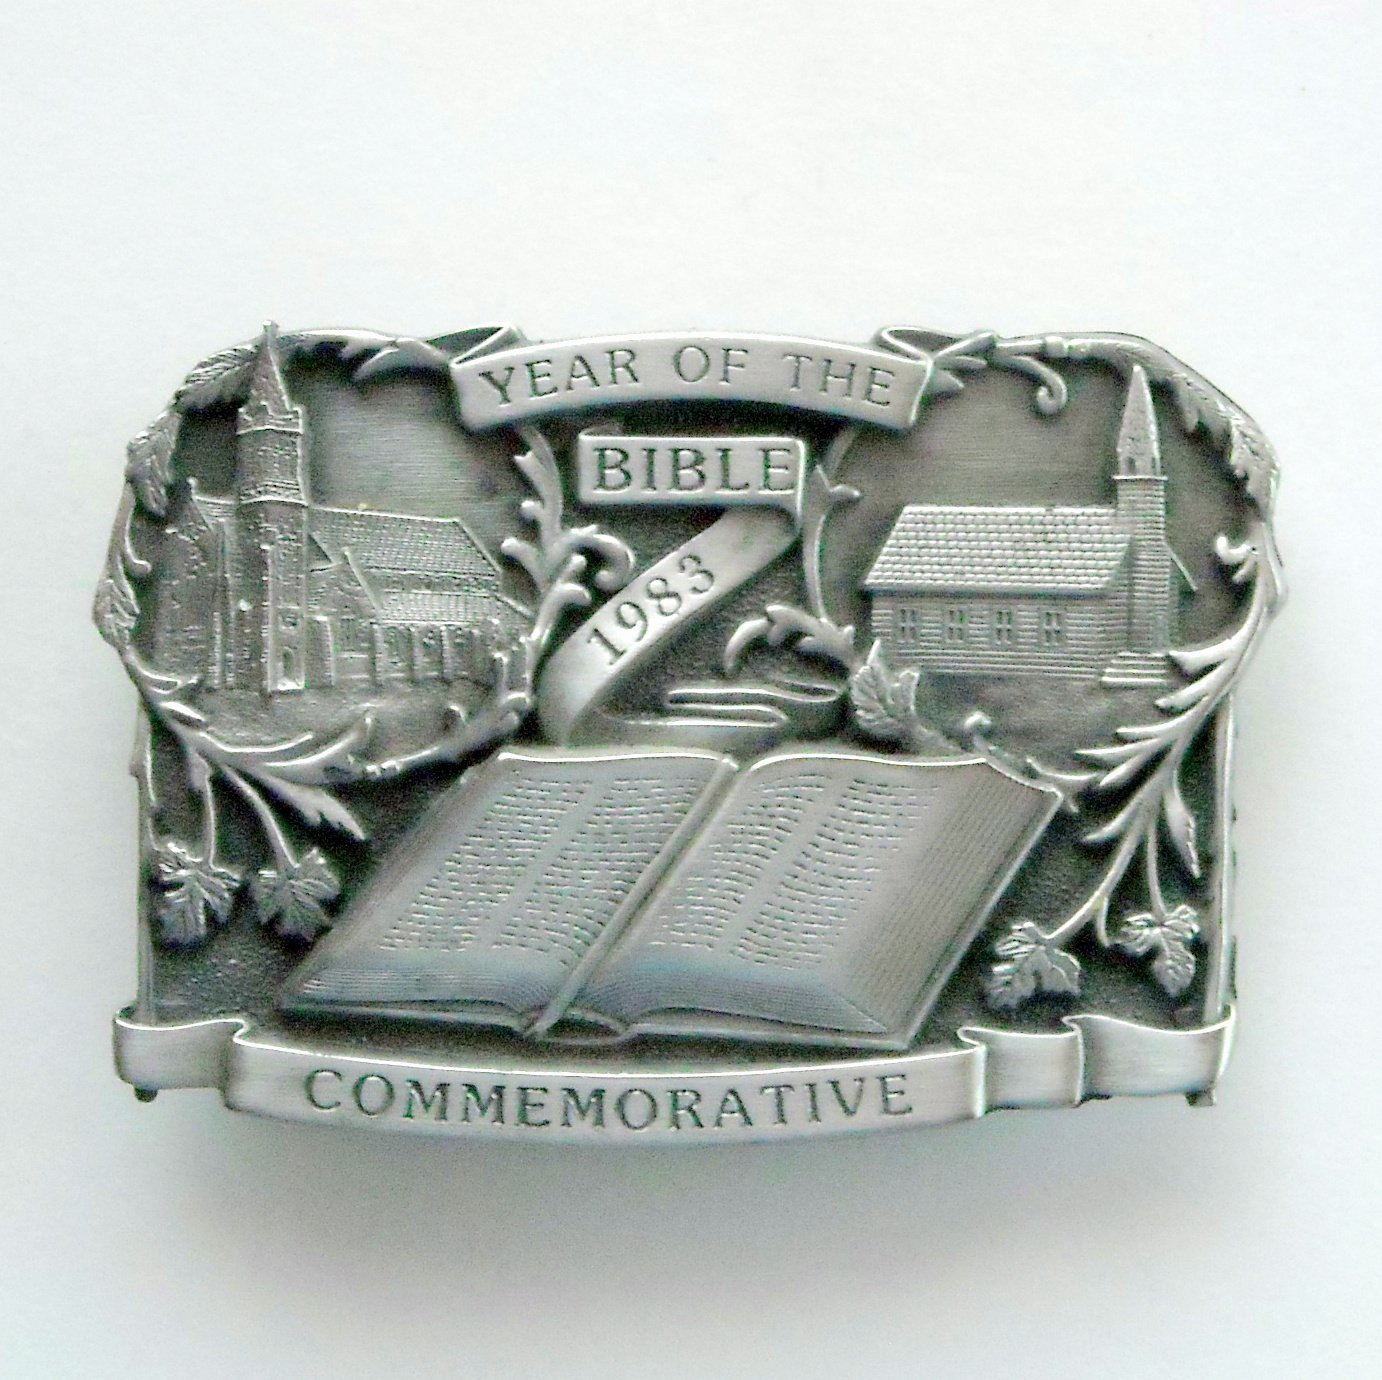 Year Of The Bible 1983 Bergamot Limited Edition No 6614 Pewter Belt Buckle